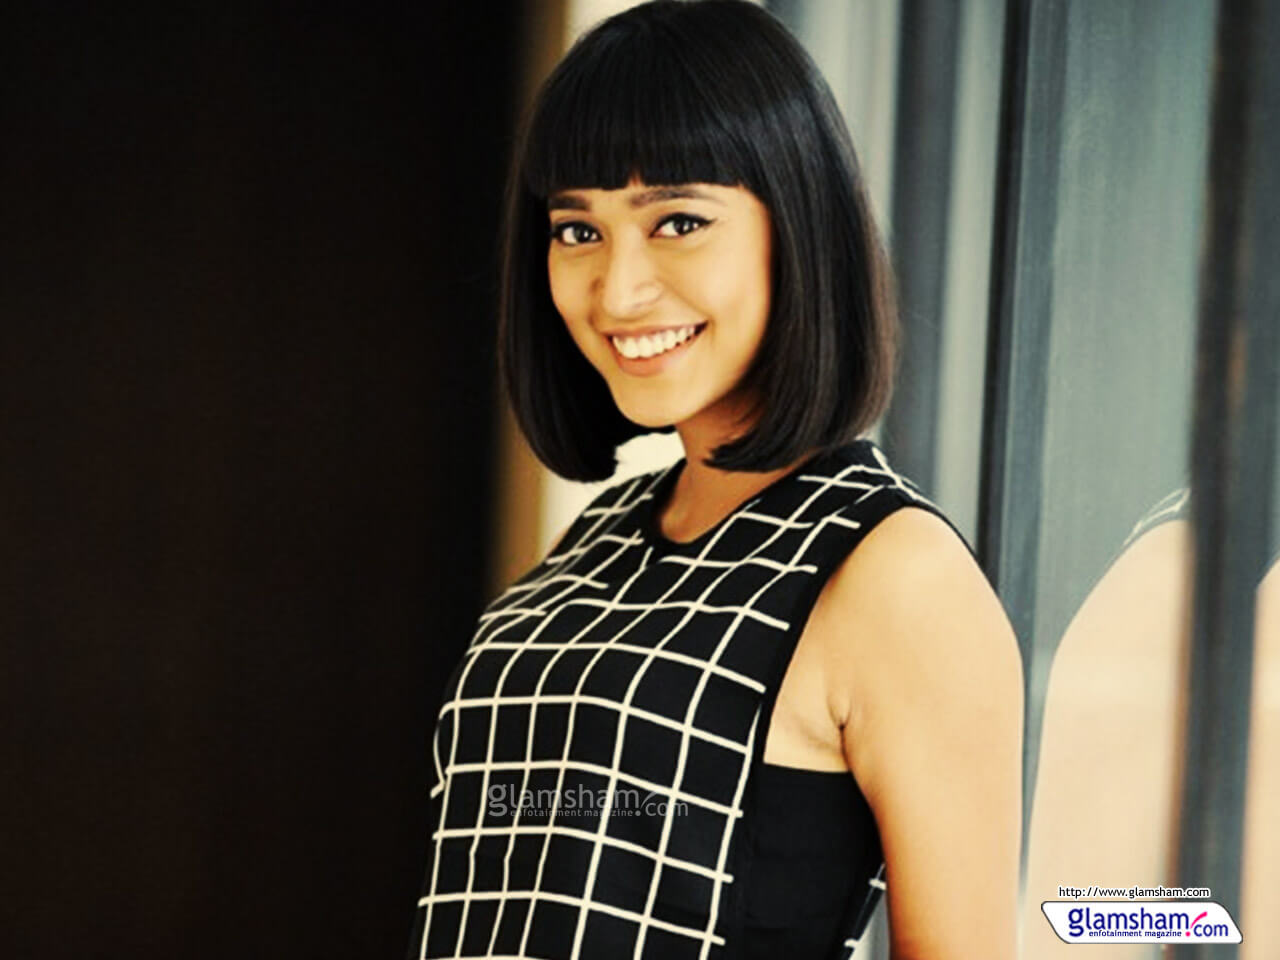 sayani-gupta-wallpaper-01-12x9